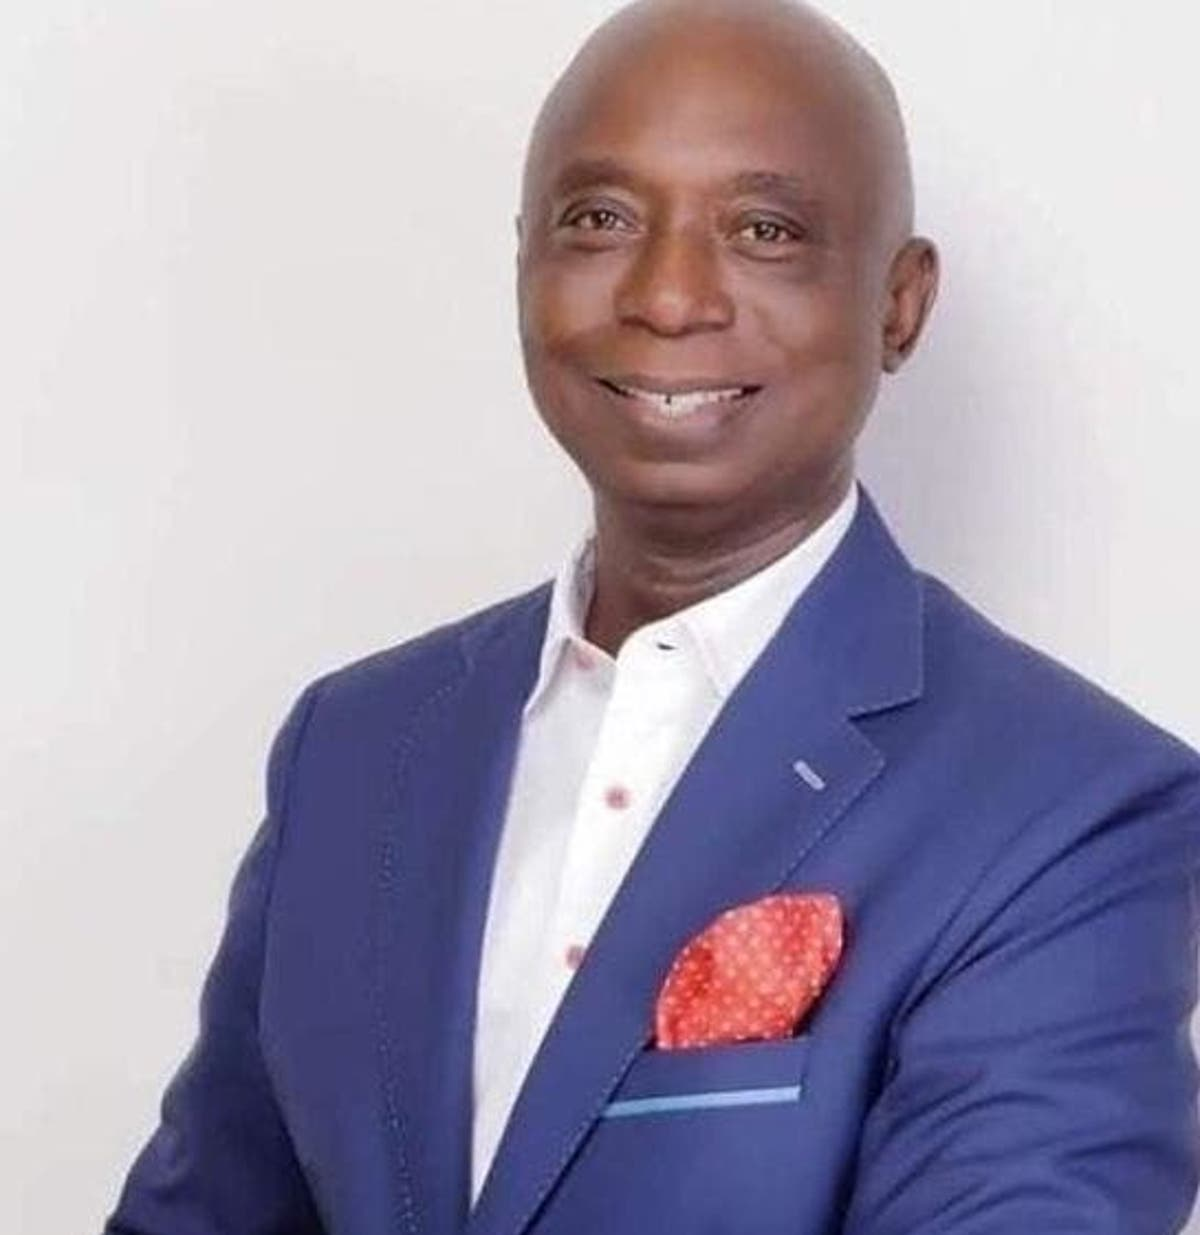 Drama As Ned Nwoko Trends On Twitter, See Why